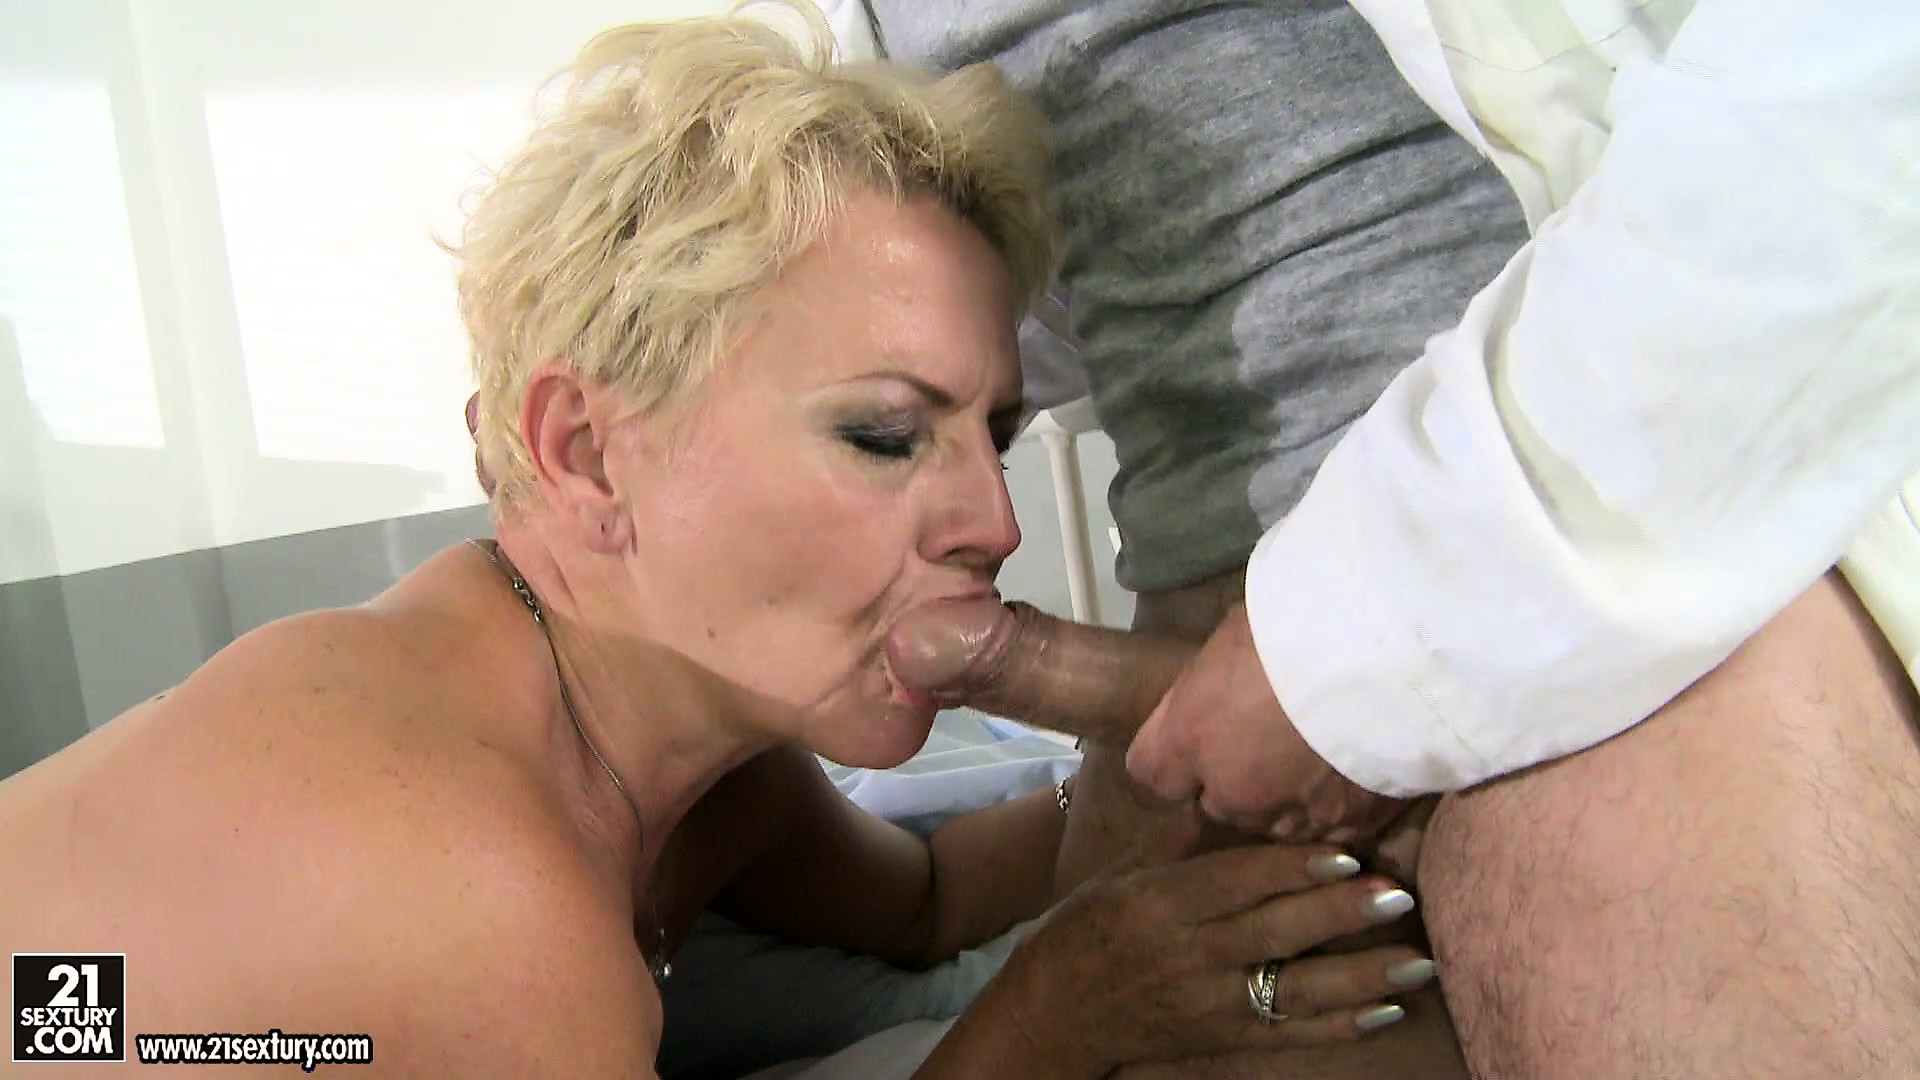 grandma free porn tube videos - free grandma sex tube movies from